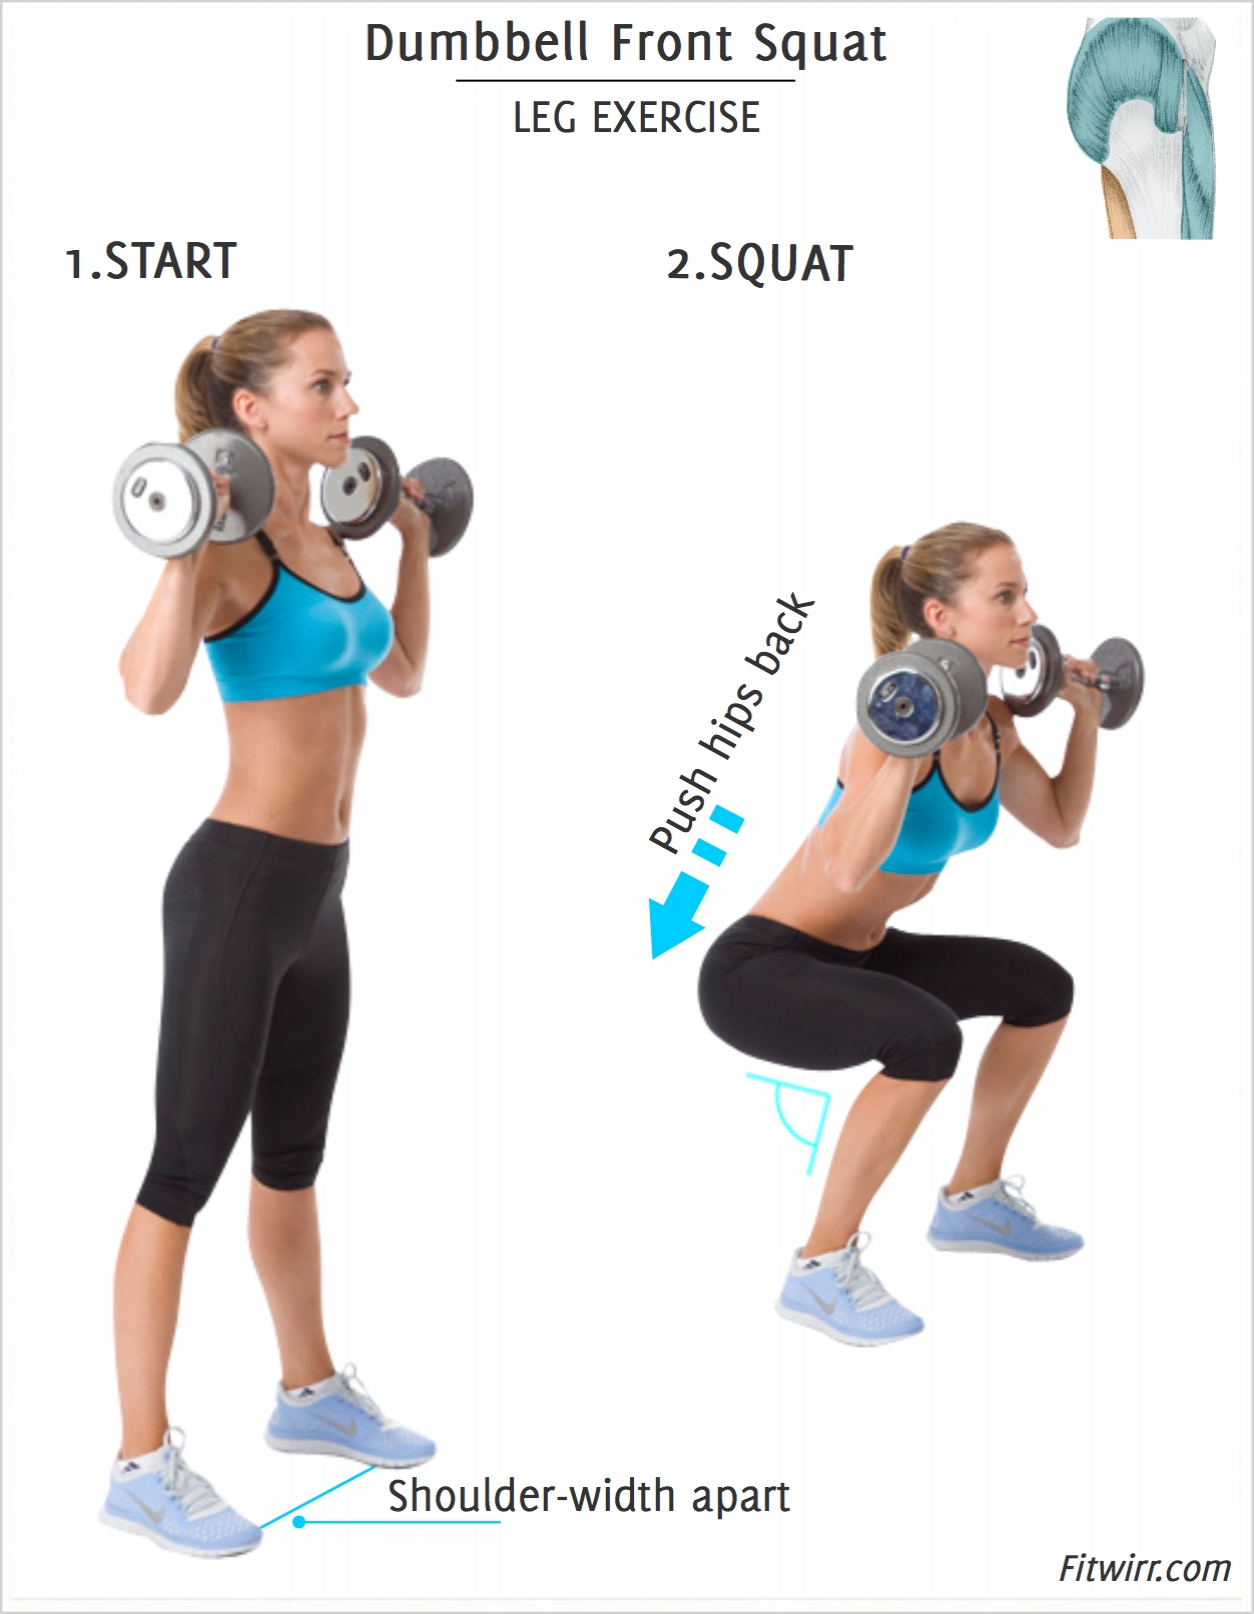 Amp Up Your Elliptical Workout to Burn Fat Fast | HealthWorks Malaysia